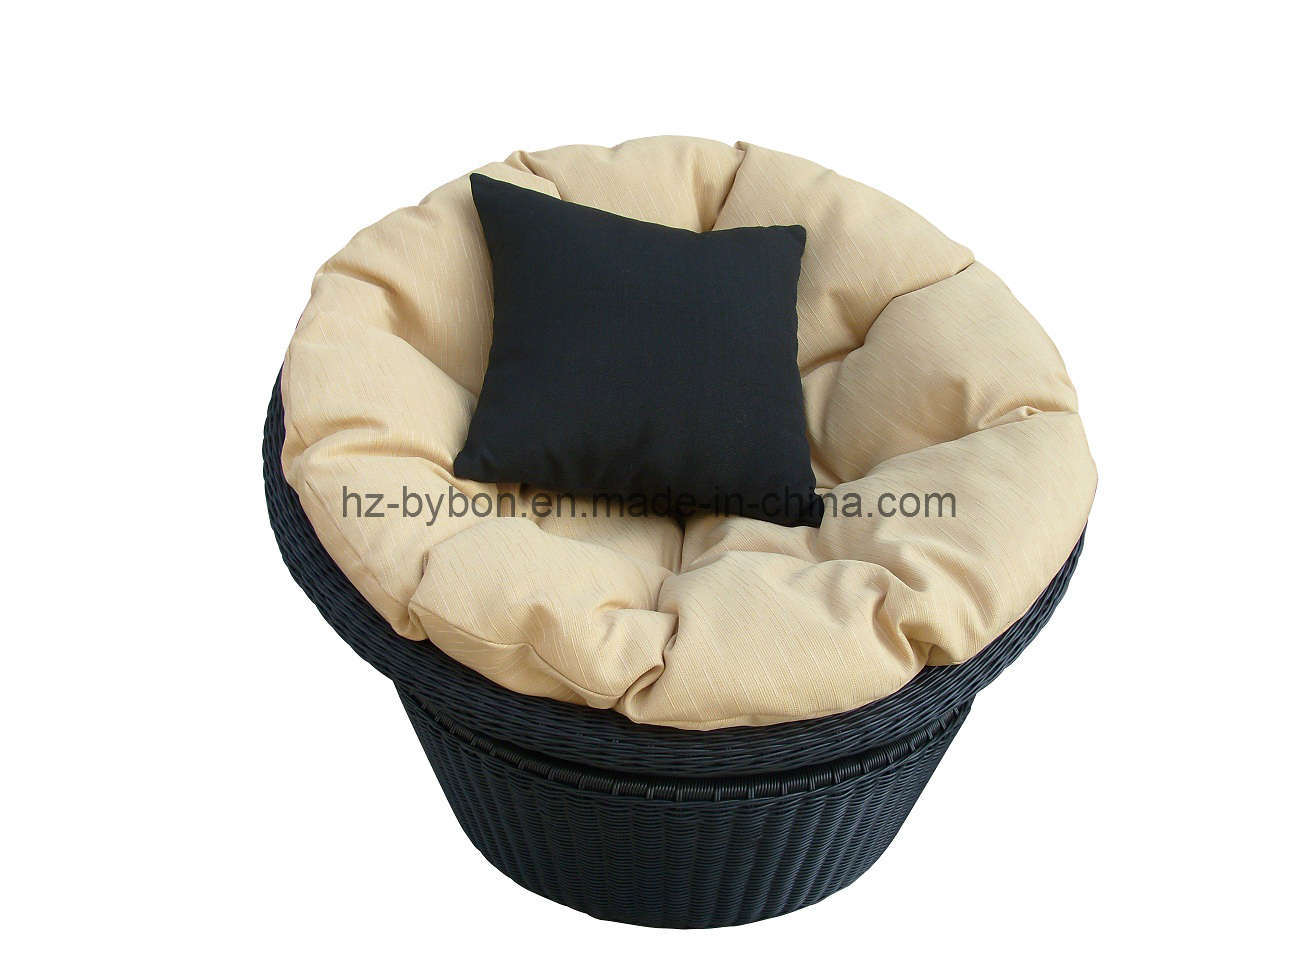 rattan round swivel chair c 065 china rattan chair wicker chair